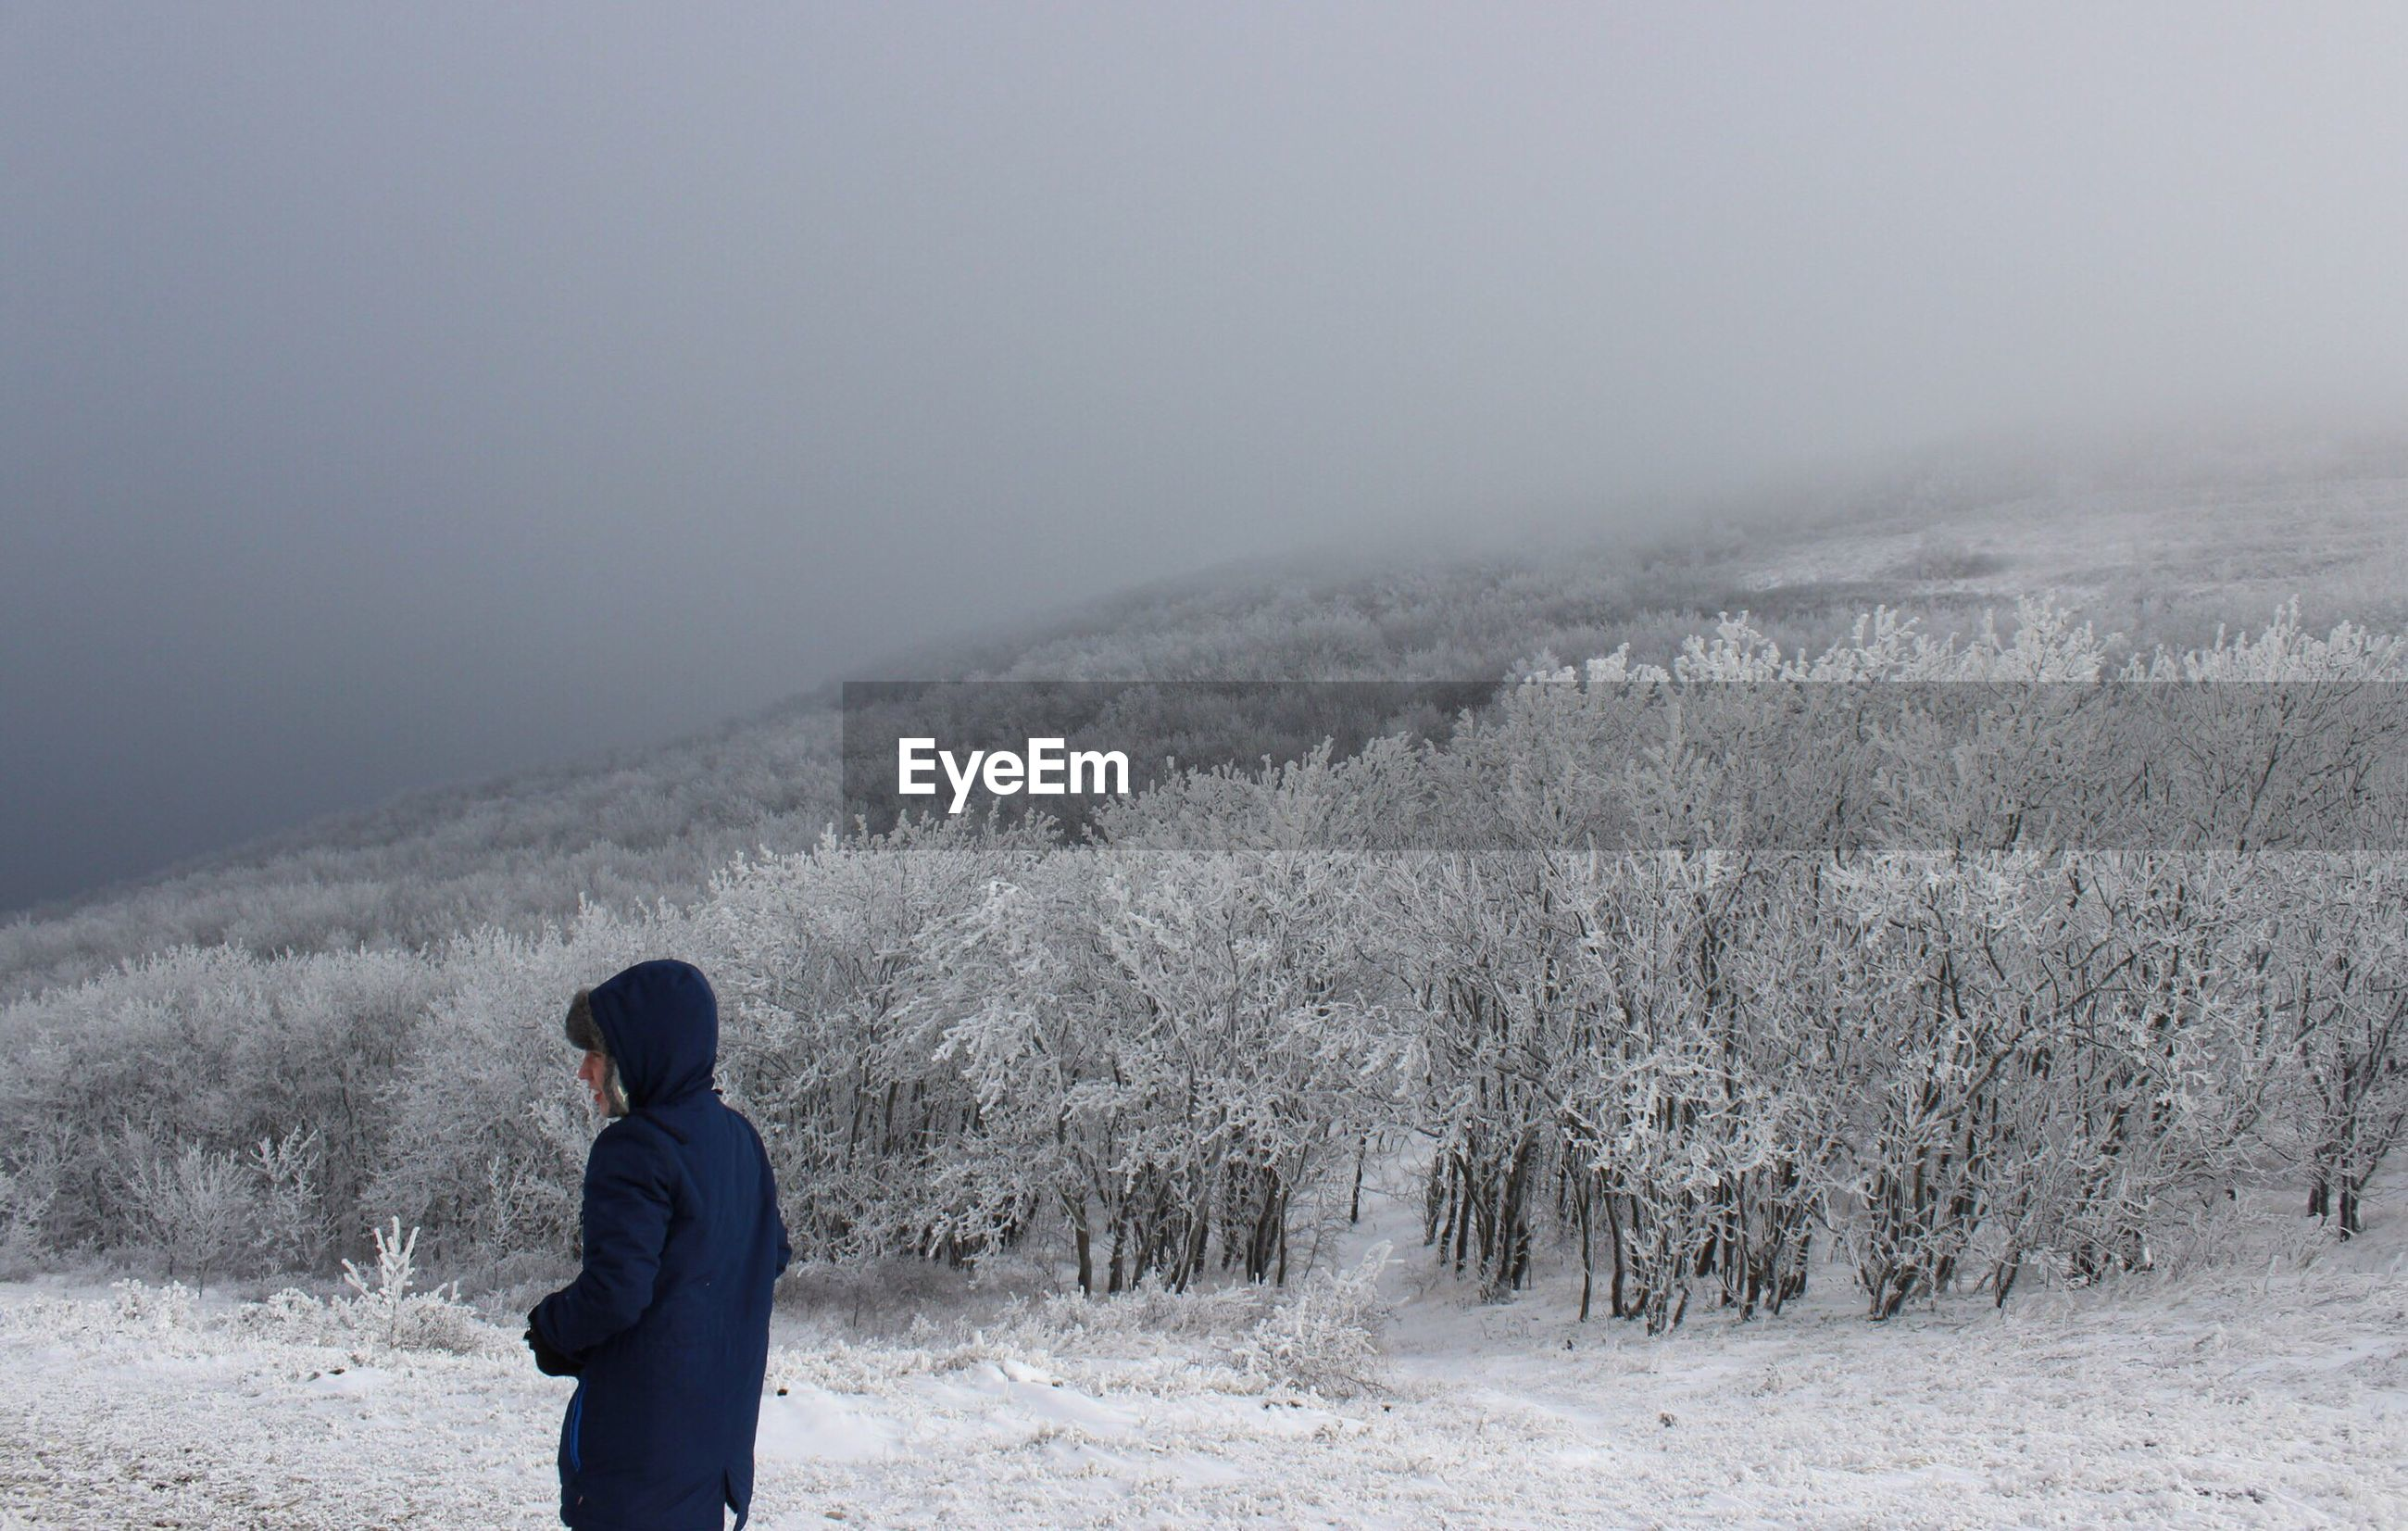 Rear view of person standing on snowy field during foggy weather